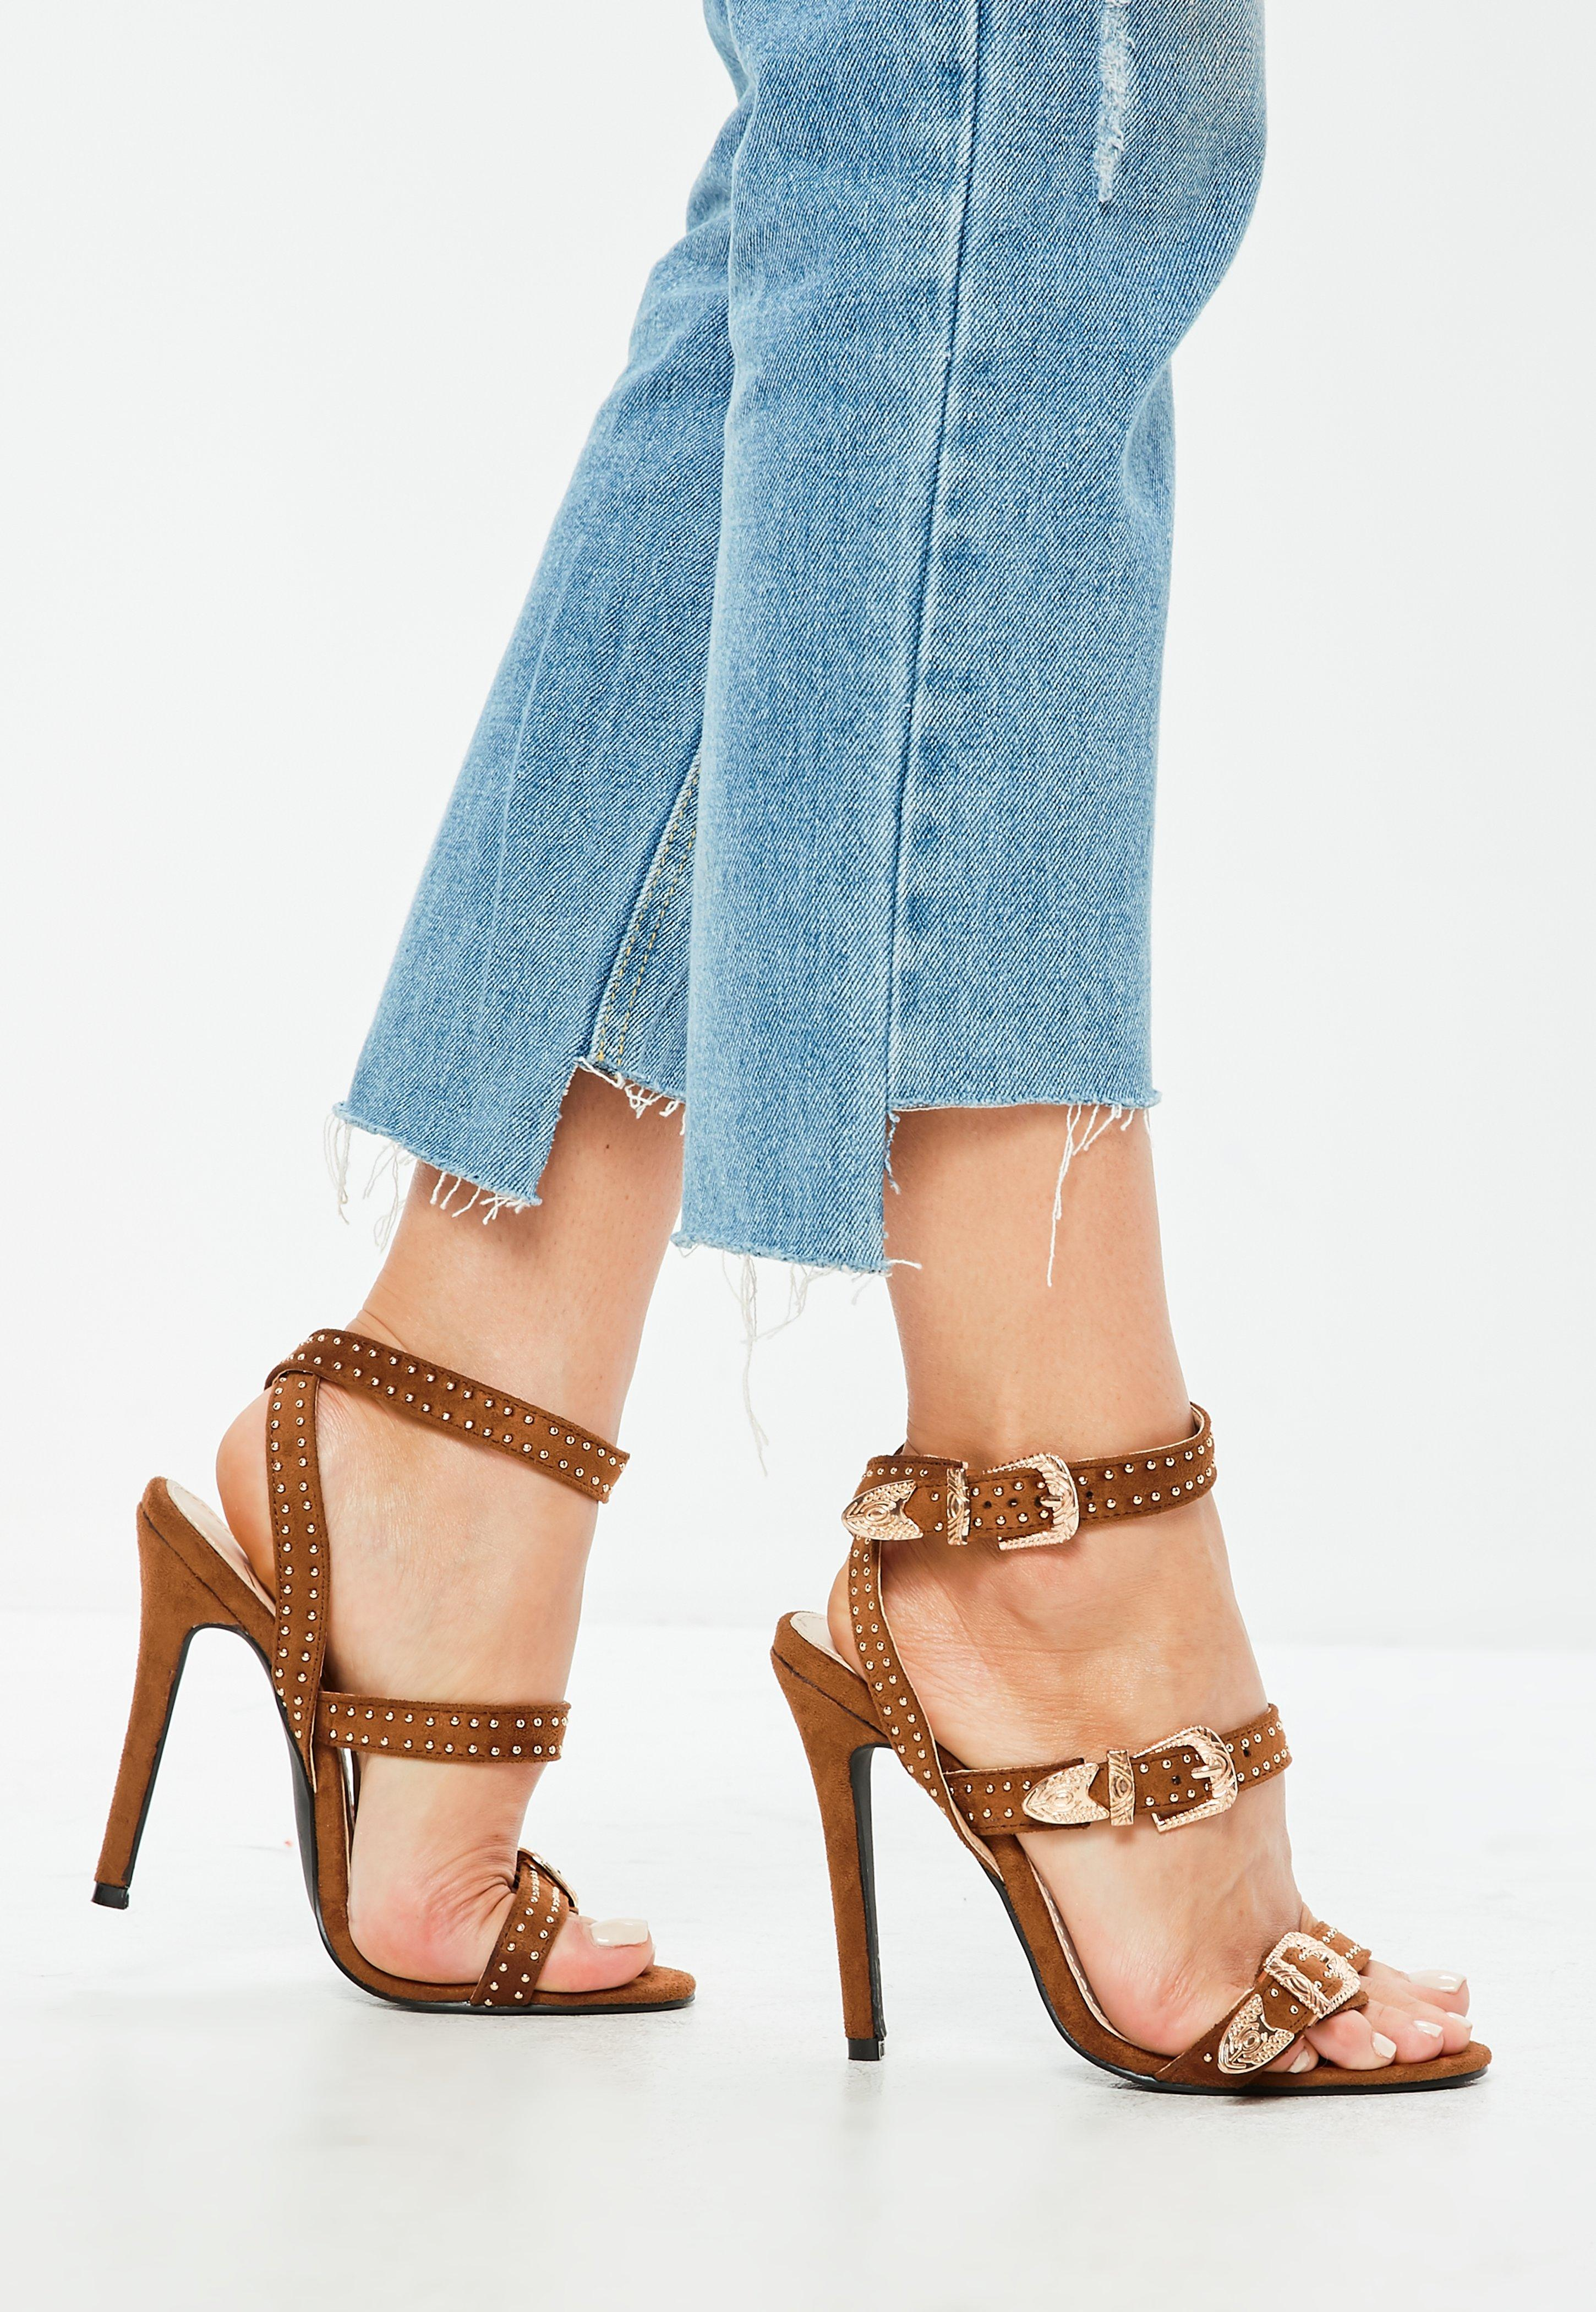 ... Tan Suedette Western Stud Strappy Barely There Heels